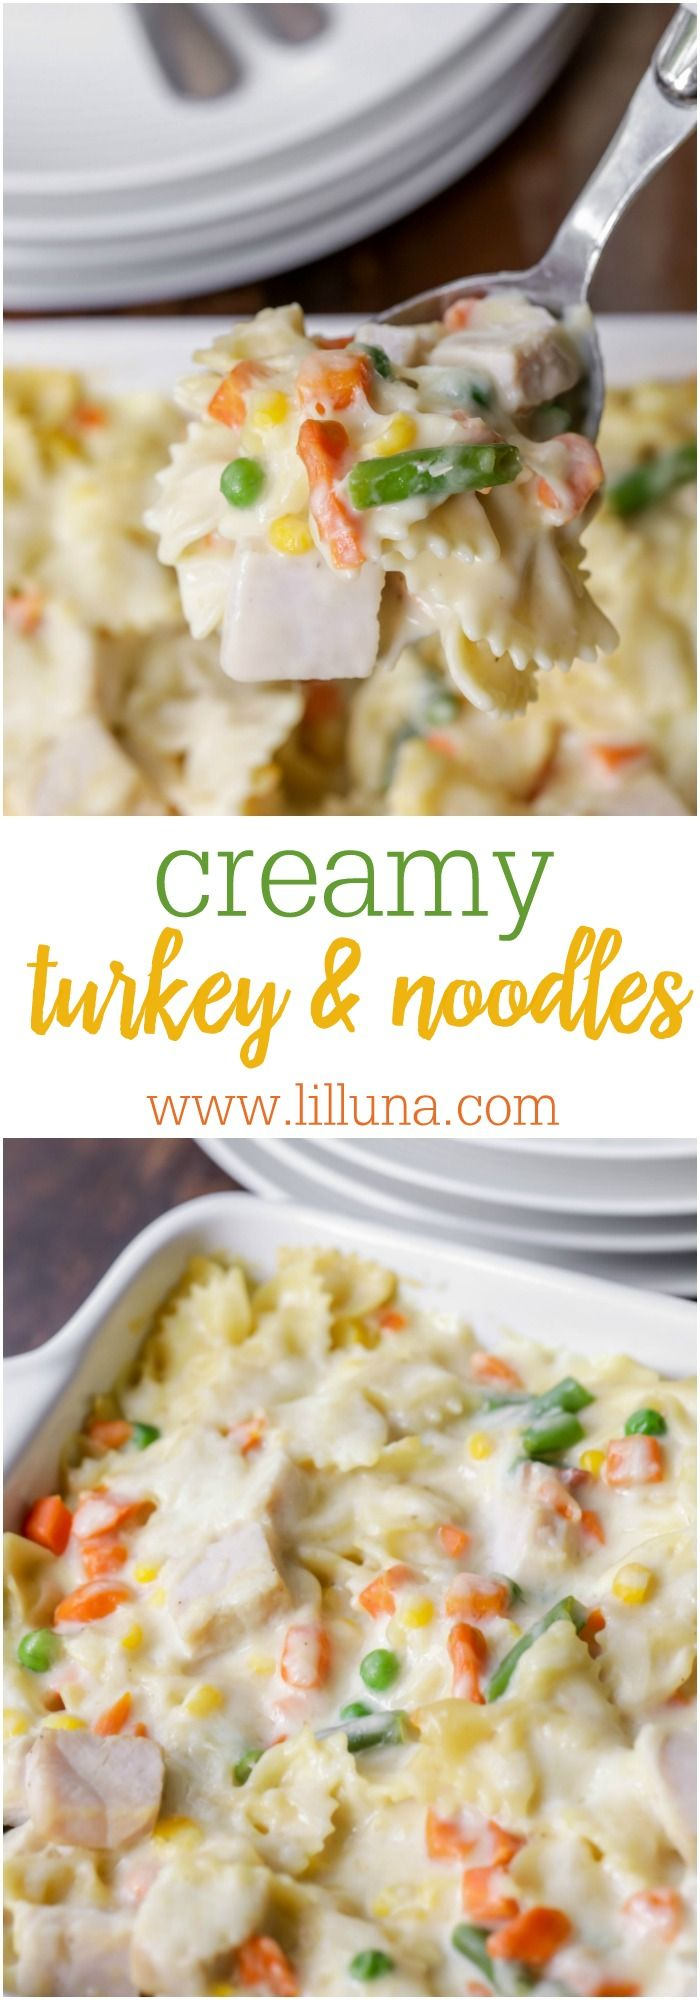 Creamy Turkey and Noodles - a simple, delicious dish that is perfect for dinner any night or perfect after Thanksgiving to help you use some of your leftover Turkey!!